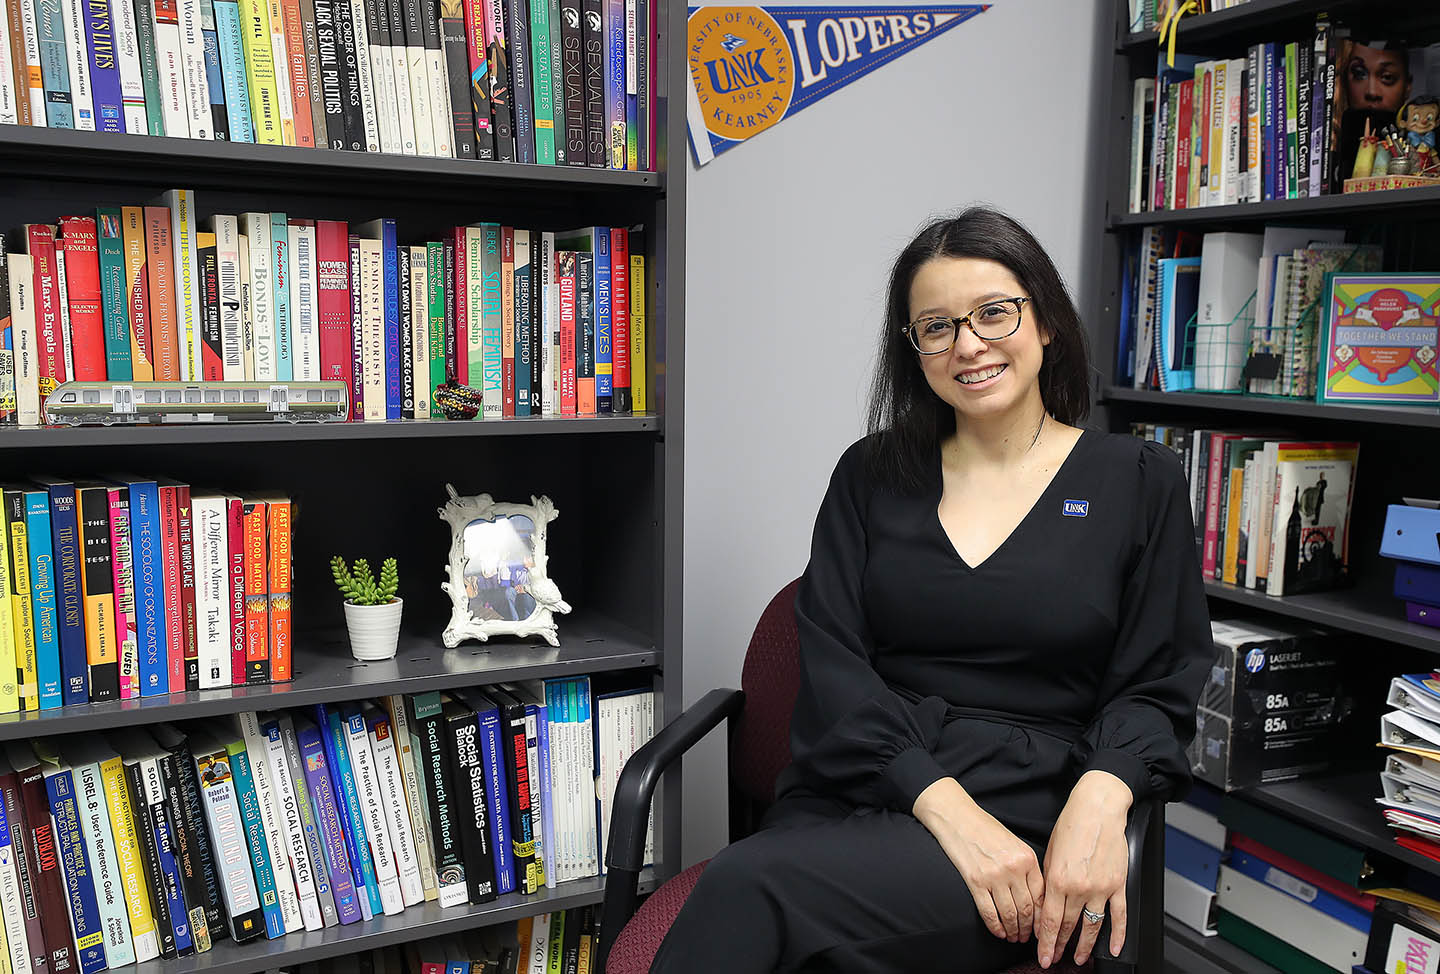 Associate sociology professor Sandra Loughrin is the first female minority to serve as director of UNK's women's, gender and ethnic studies program. She was appointed to the position in March. (Photos by Erika Pritchard, UNK Communications)